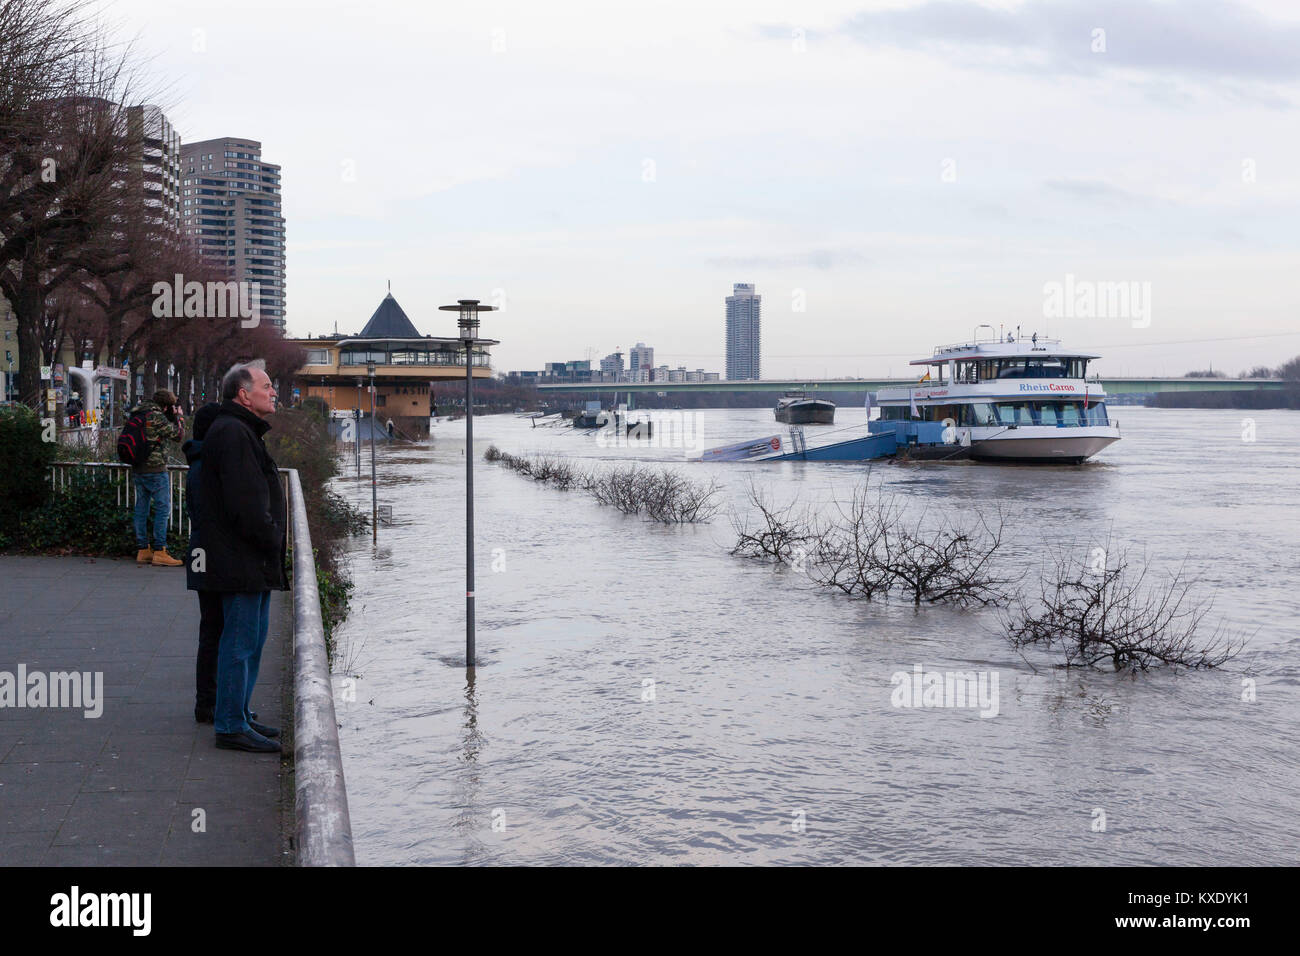 Cologne, Germany, 8. January 2018, flood of the river Rhine, in the background the Bastei.  Köln, Deutschland, - Stock Image